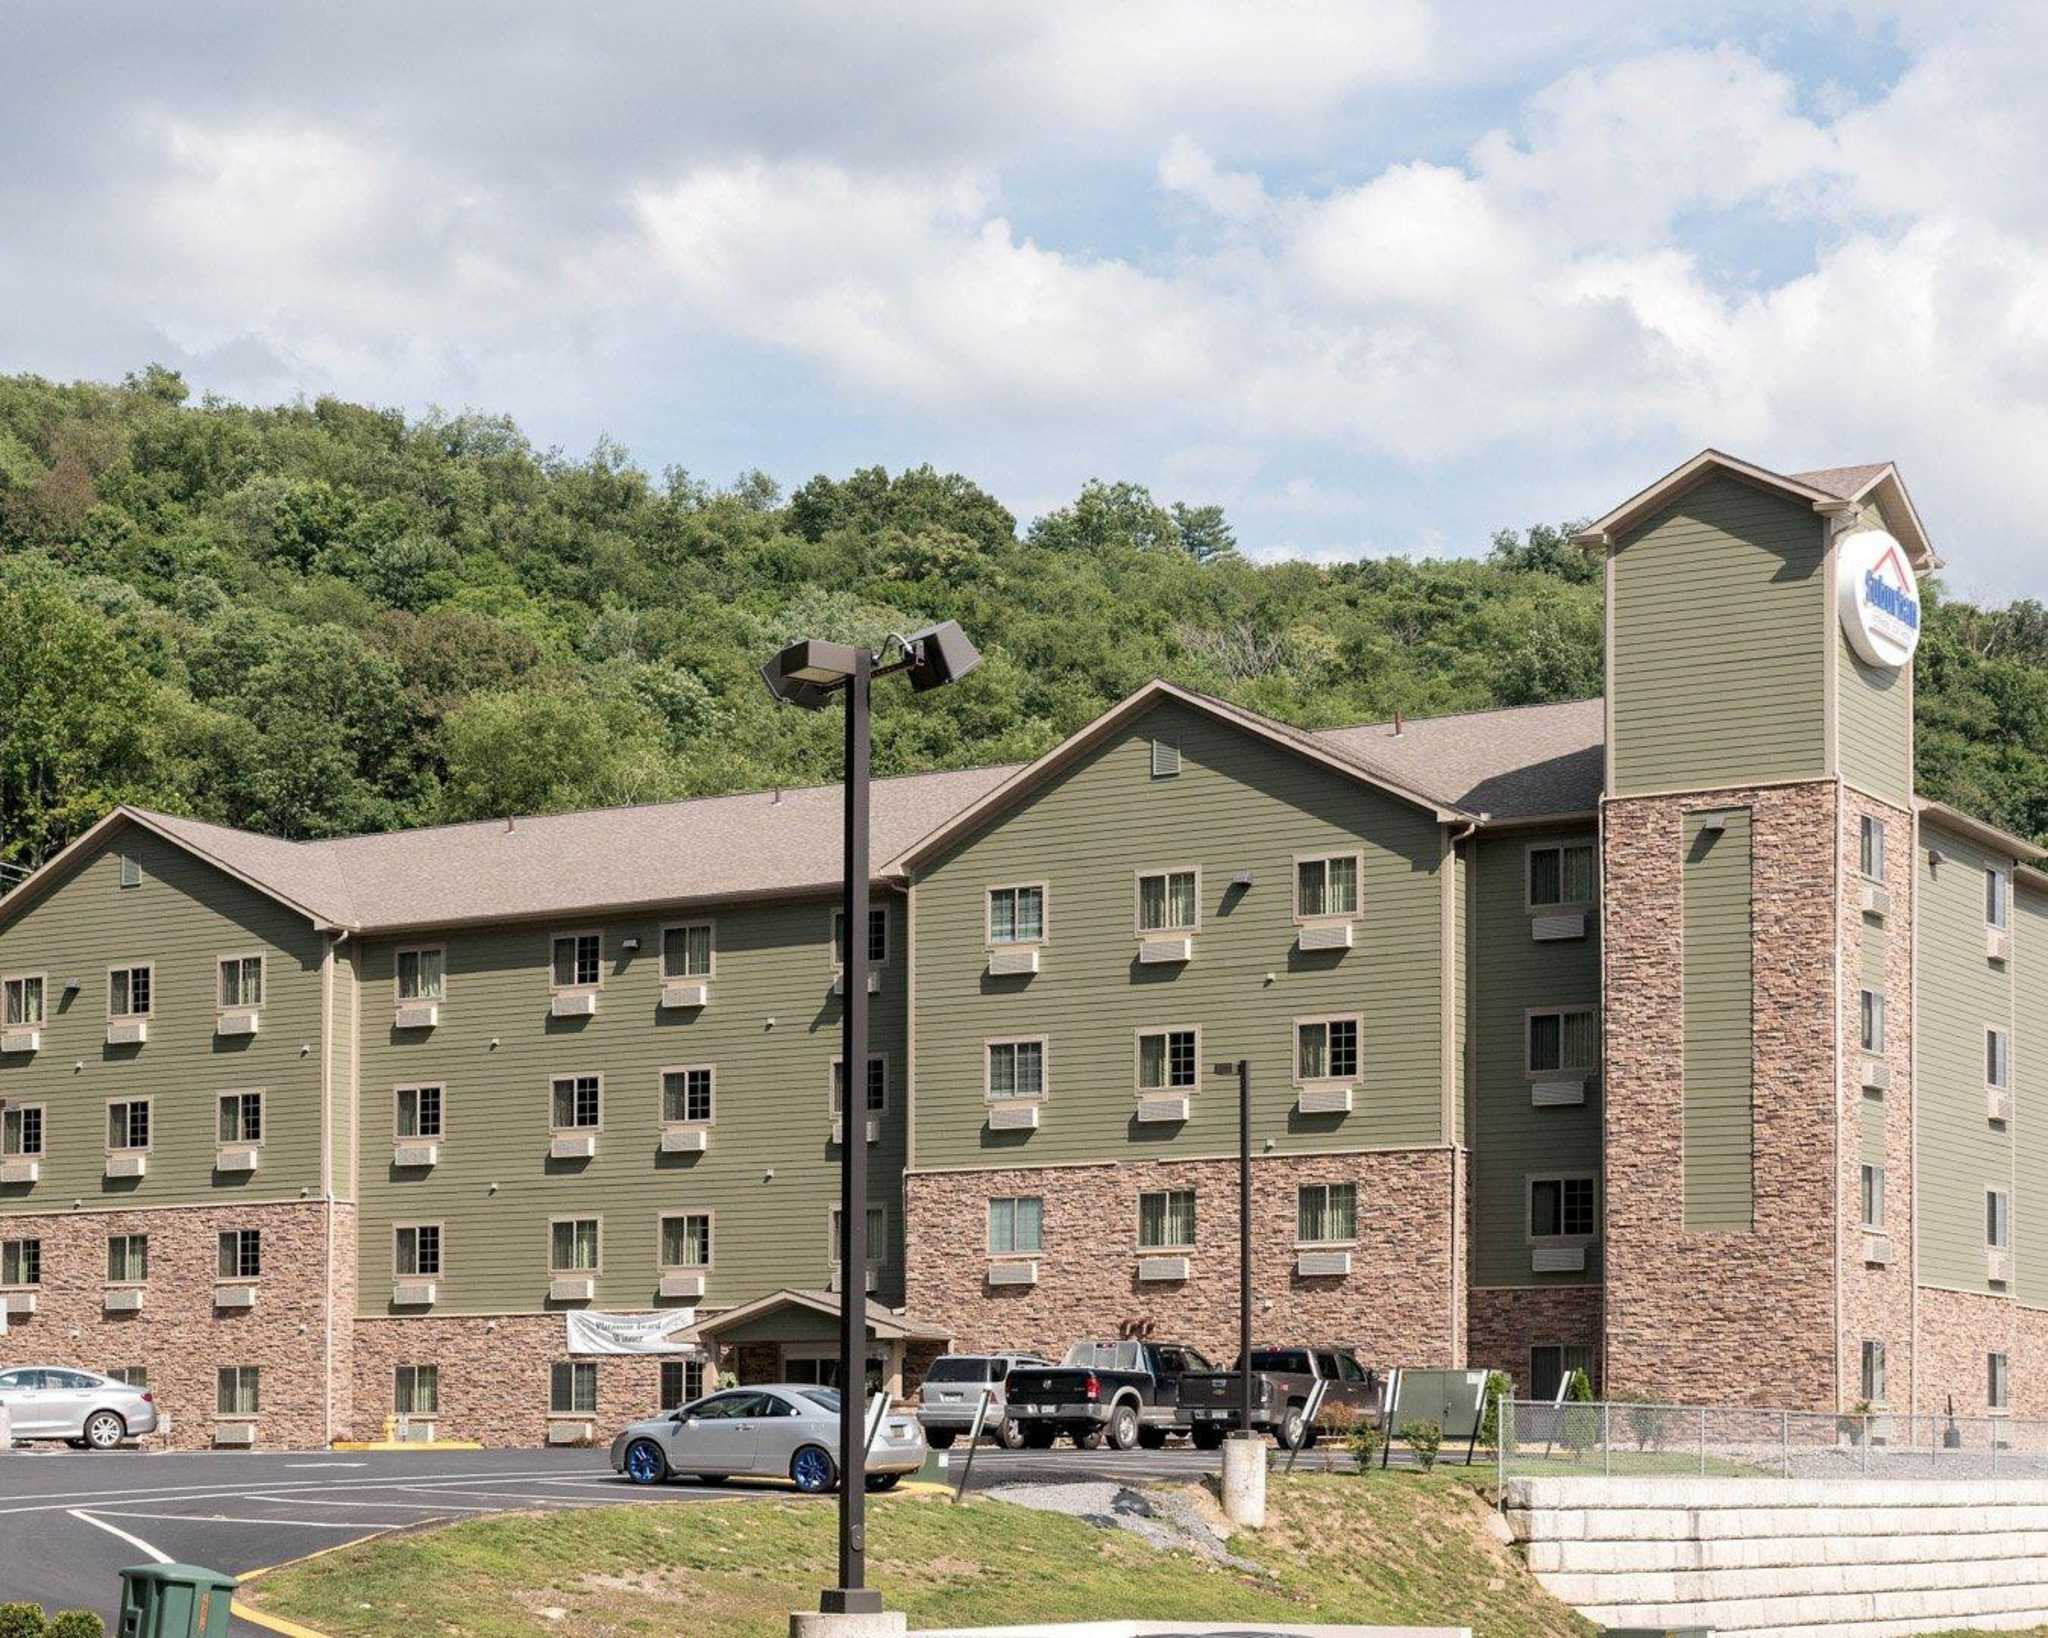 Pet Friendly Hotels Near Morgantown Wv